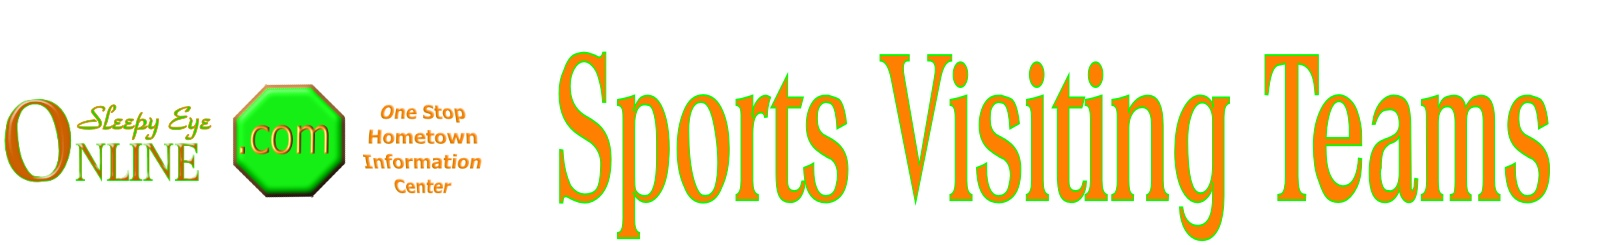 Header- Sports visitors